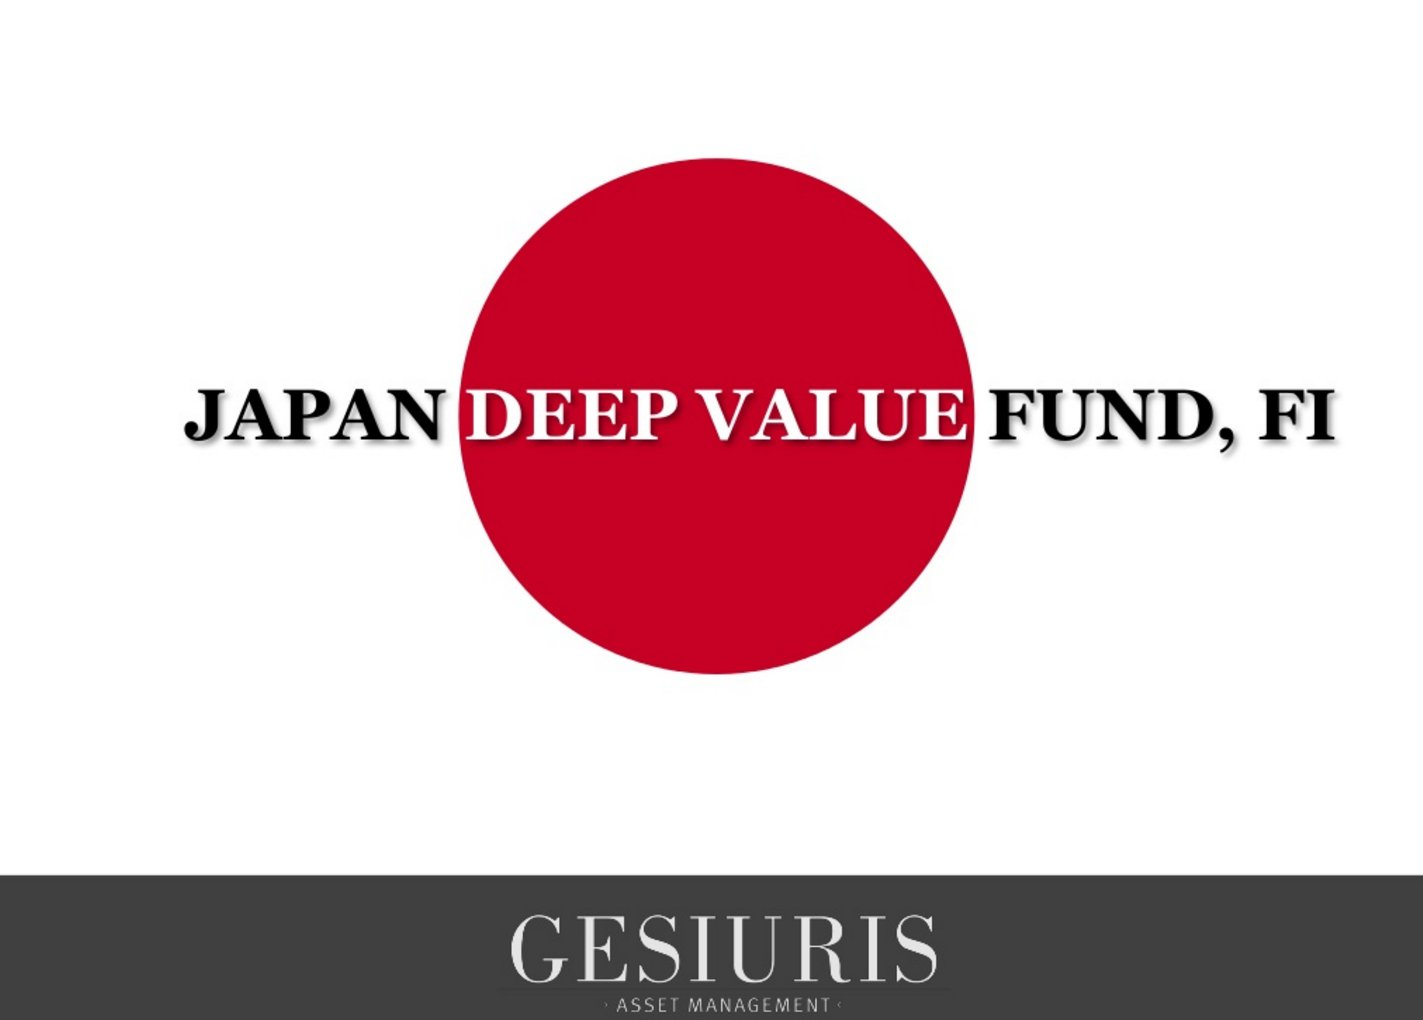 Japan Deep Value